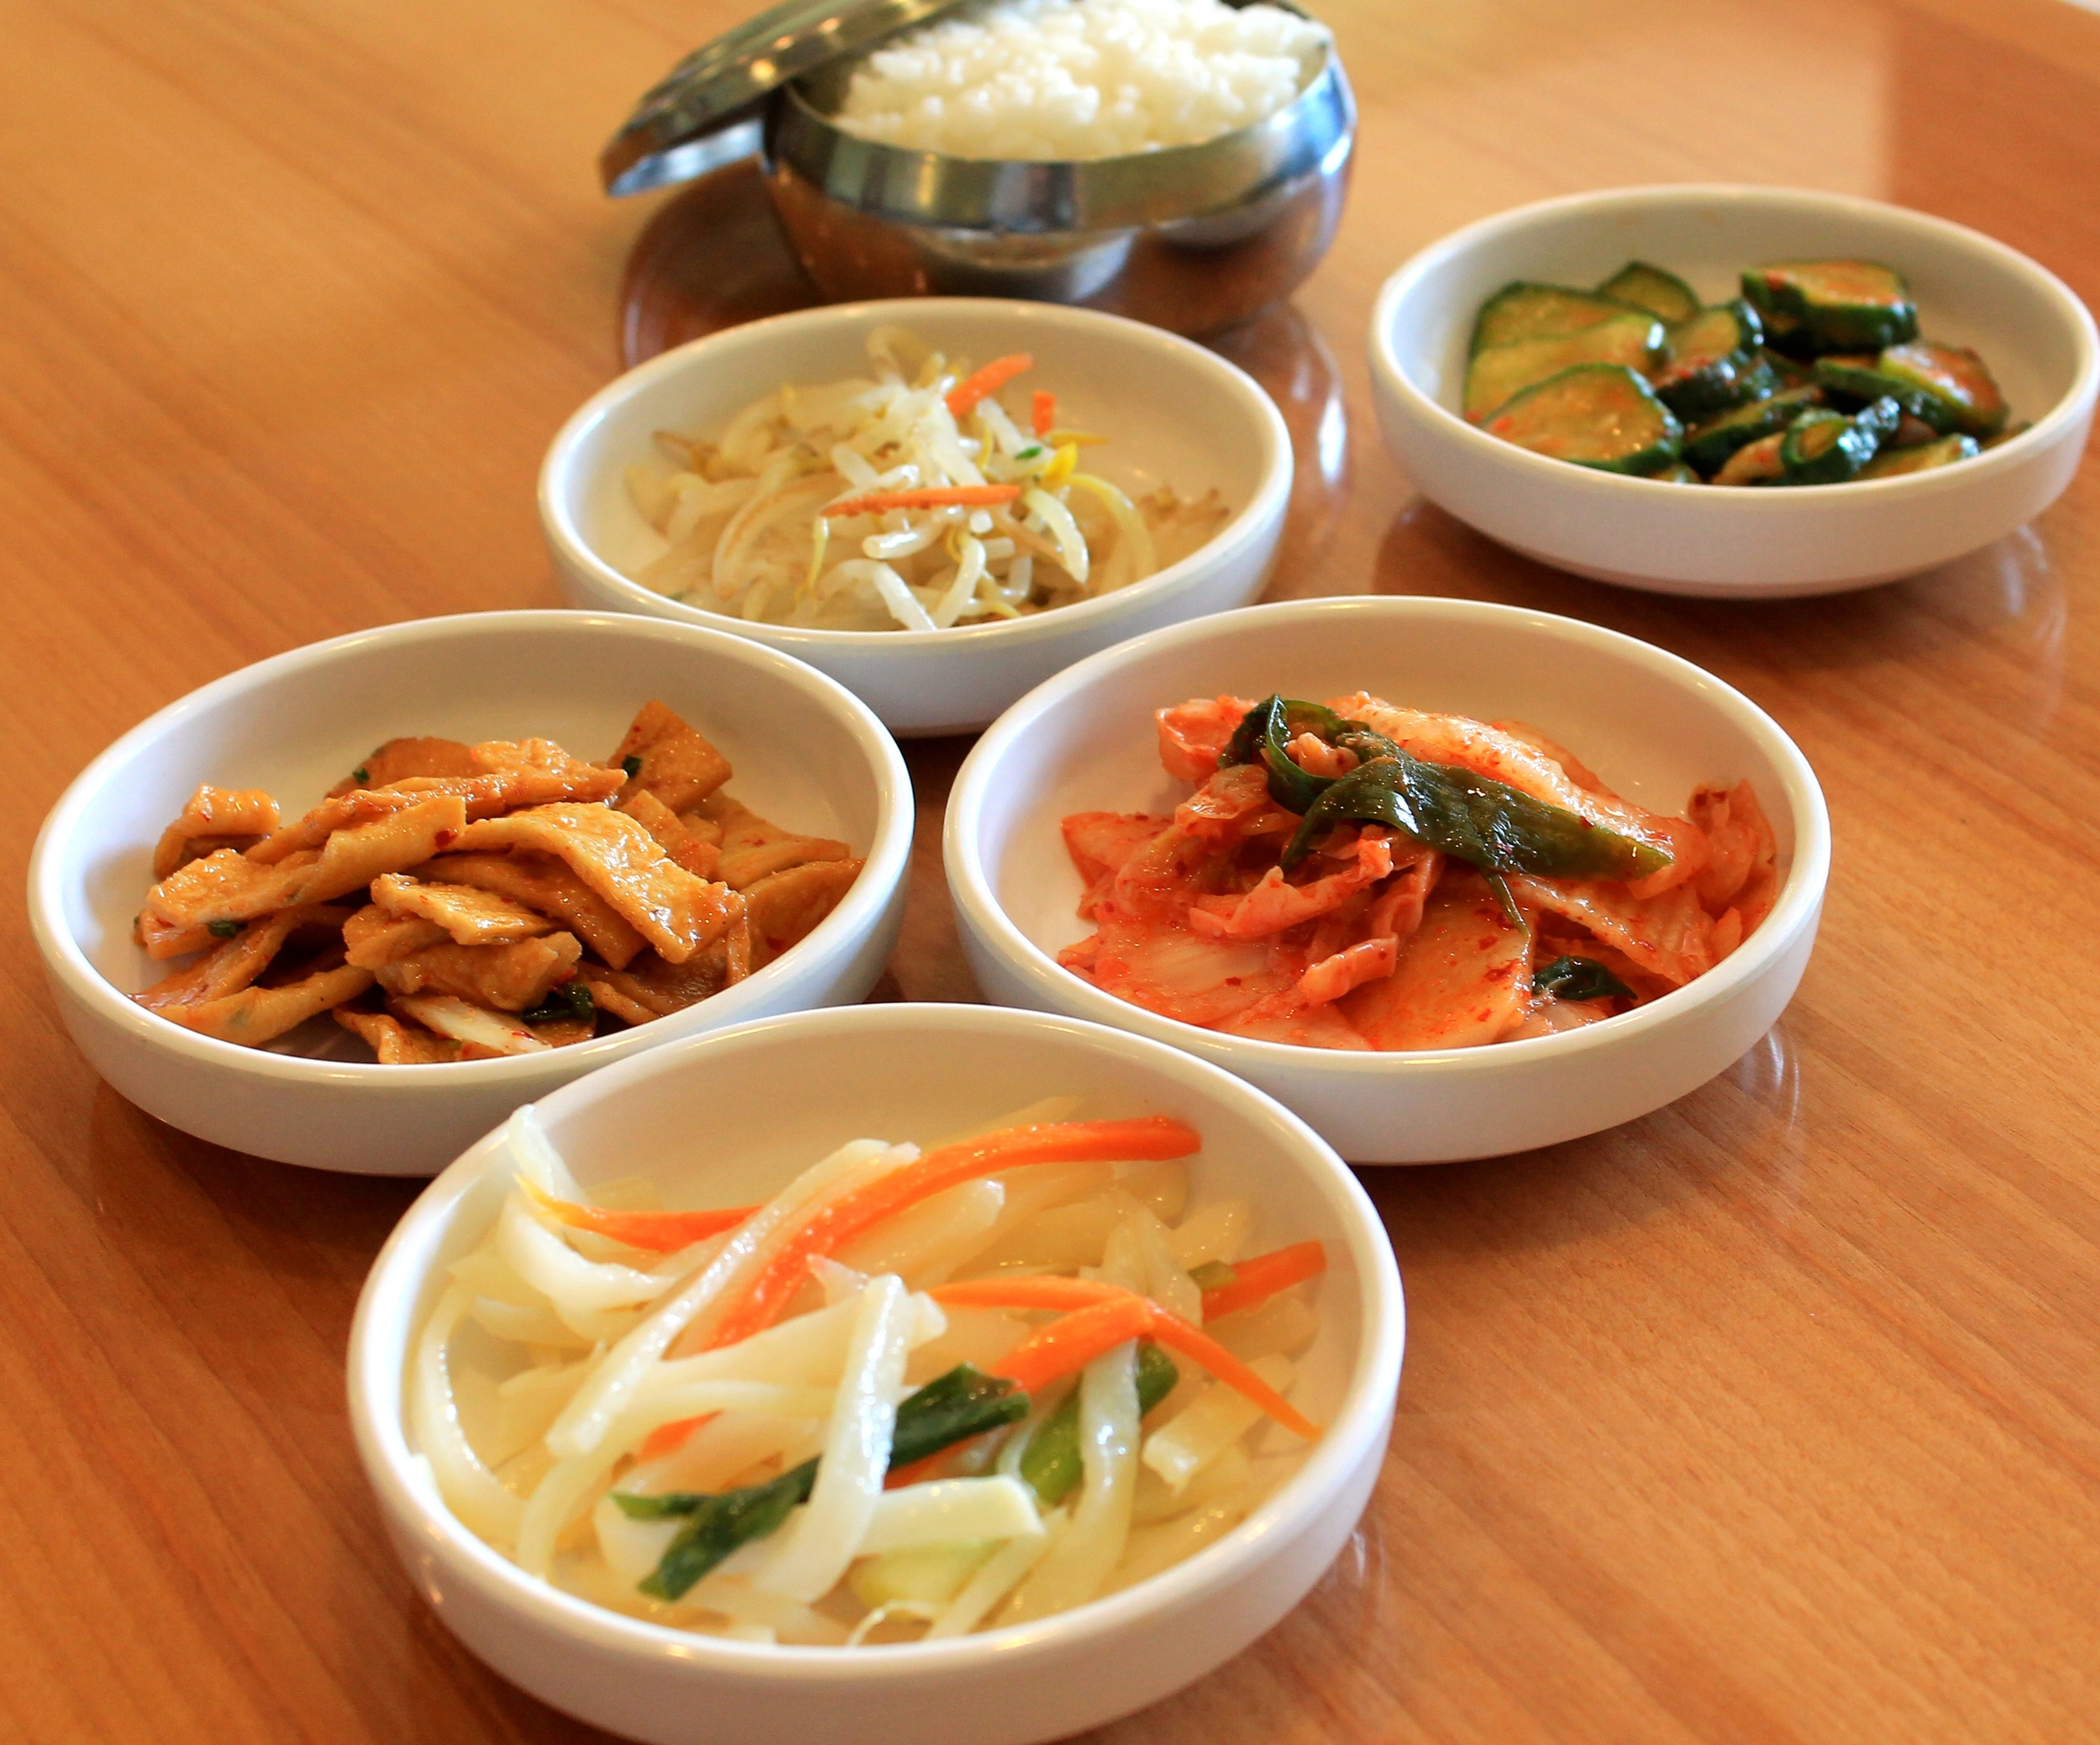 Traditional side dishes or  banchan  accompany every meal.